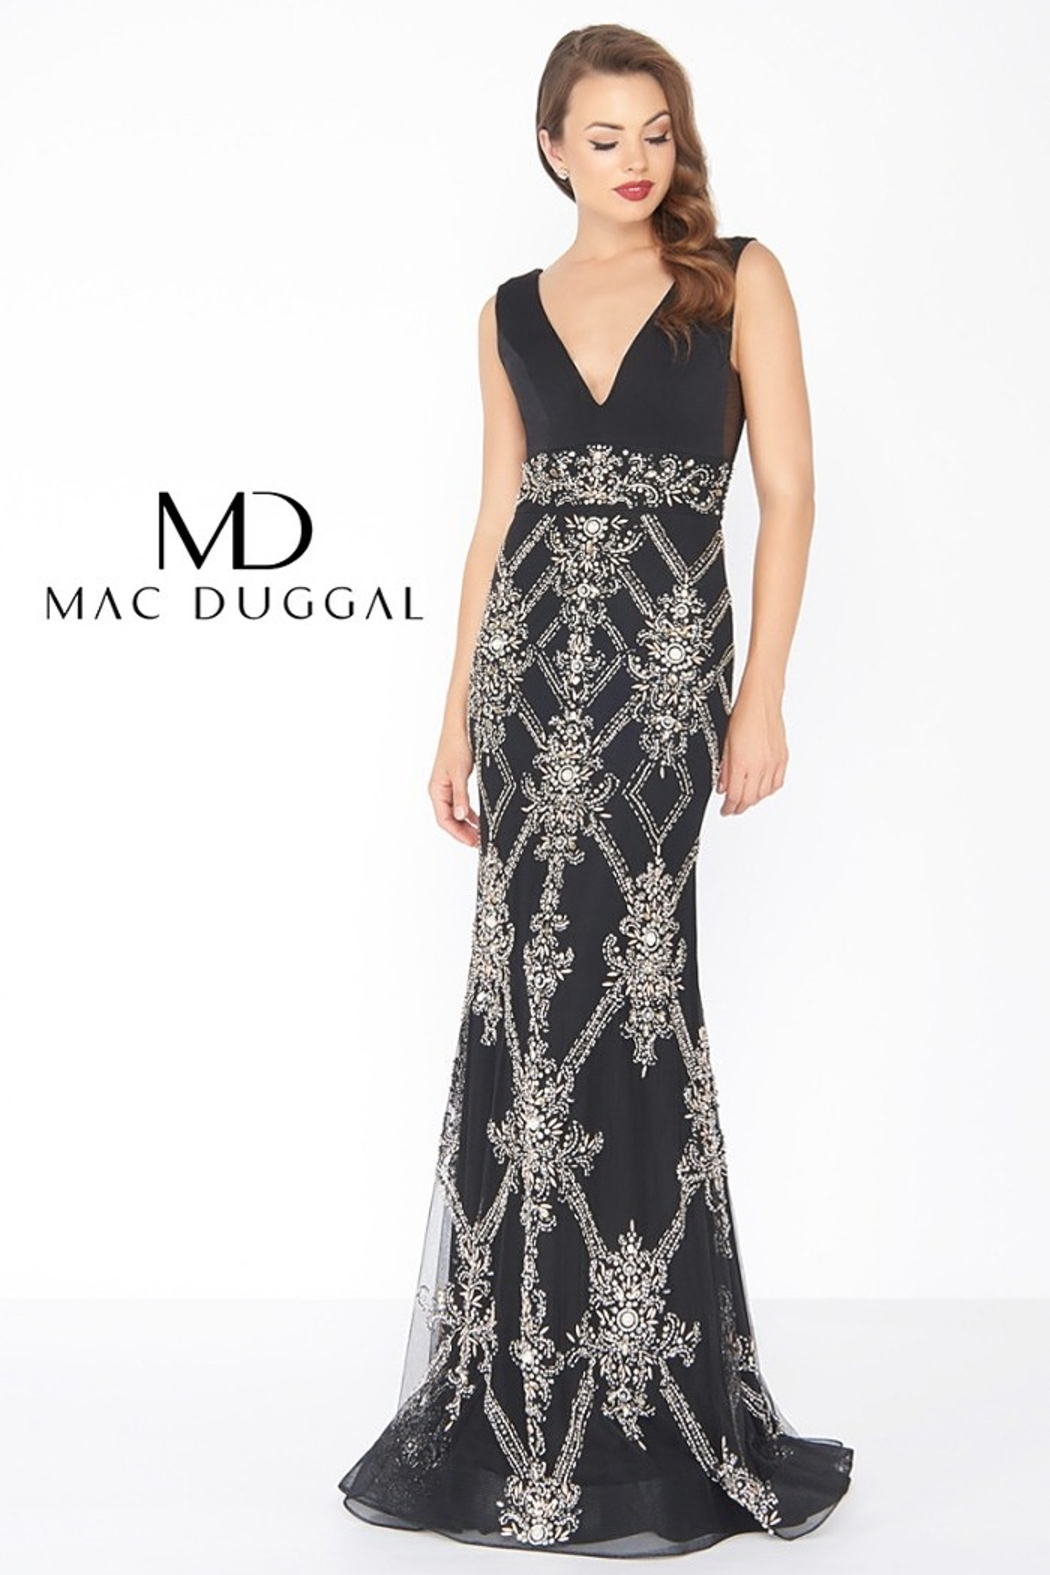 Mac Duggal V NECK GOWN - - Main Image